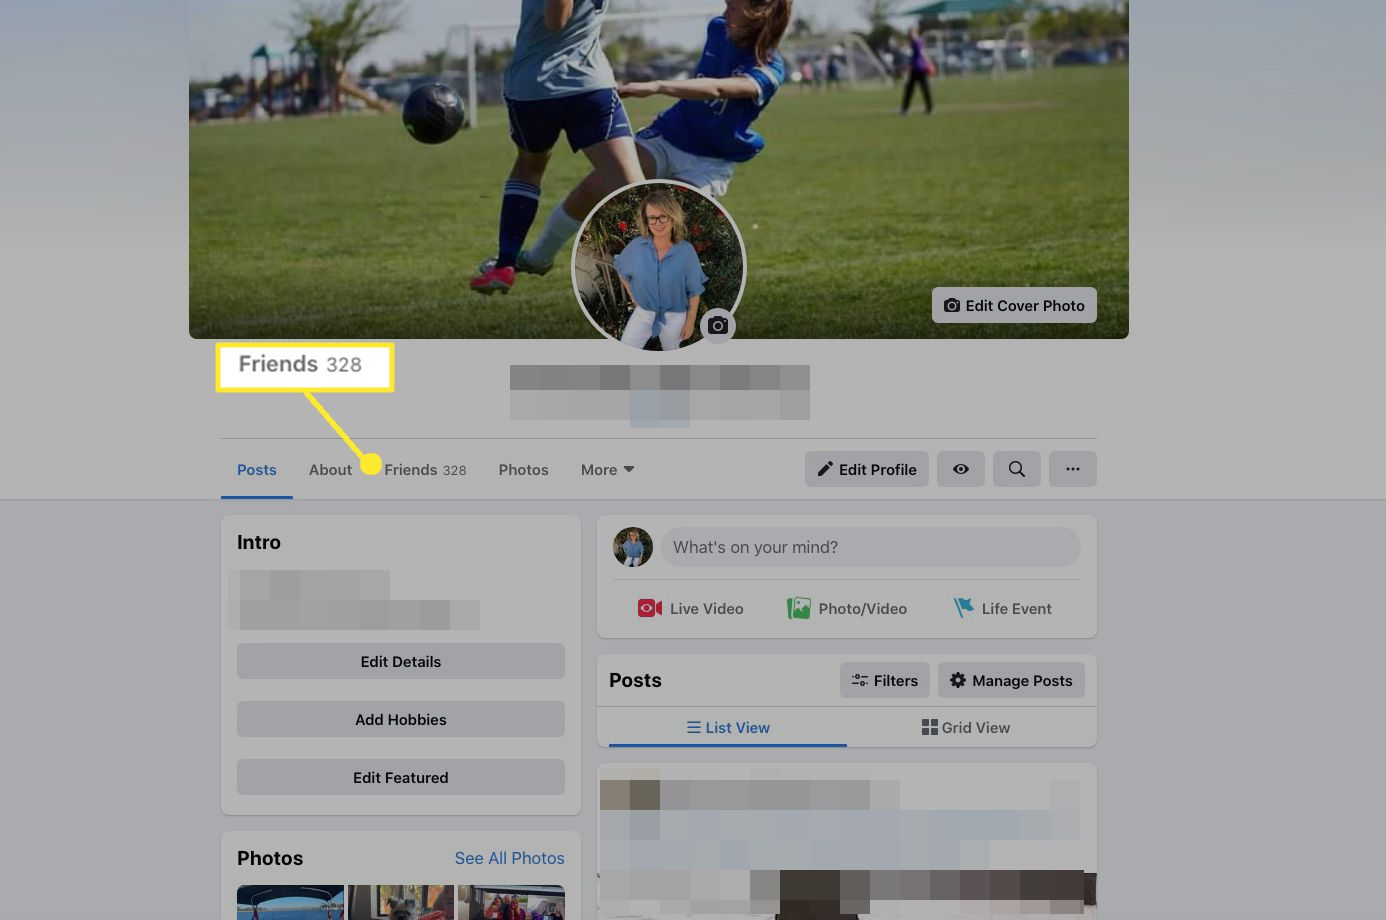 Select Friends to view your list of Facebook Friends.